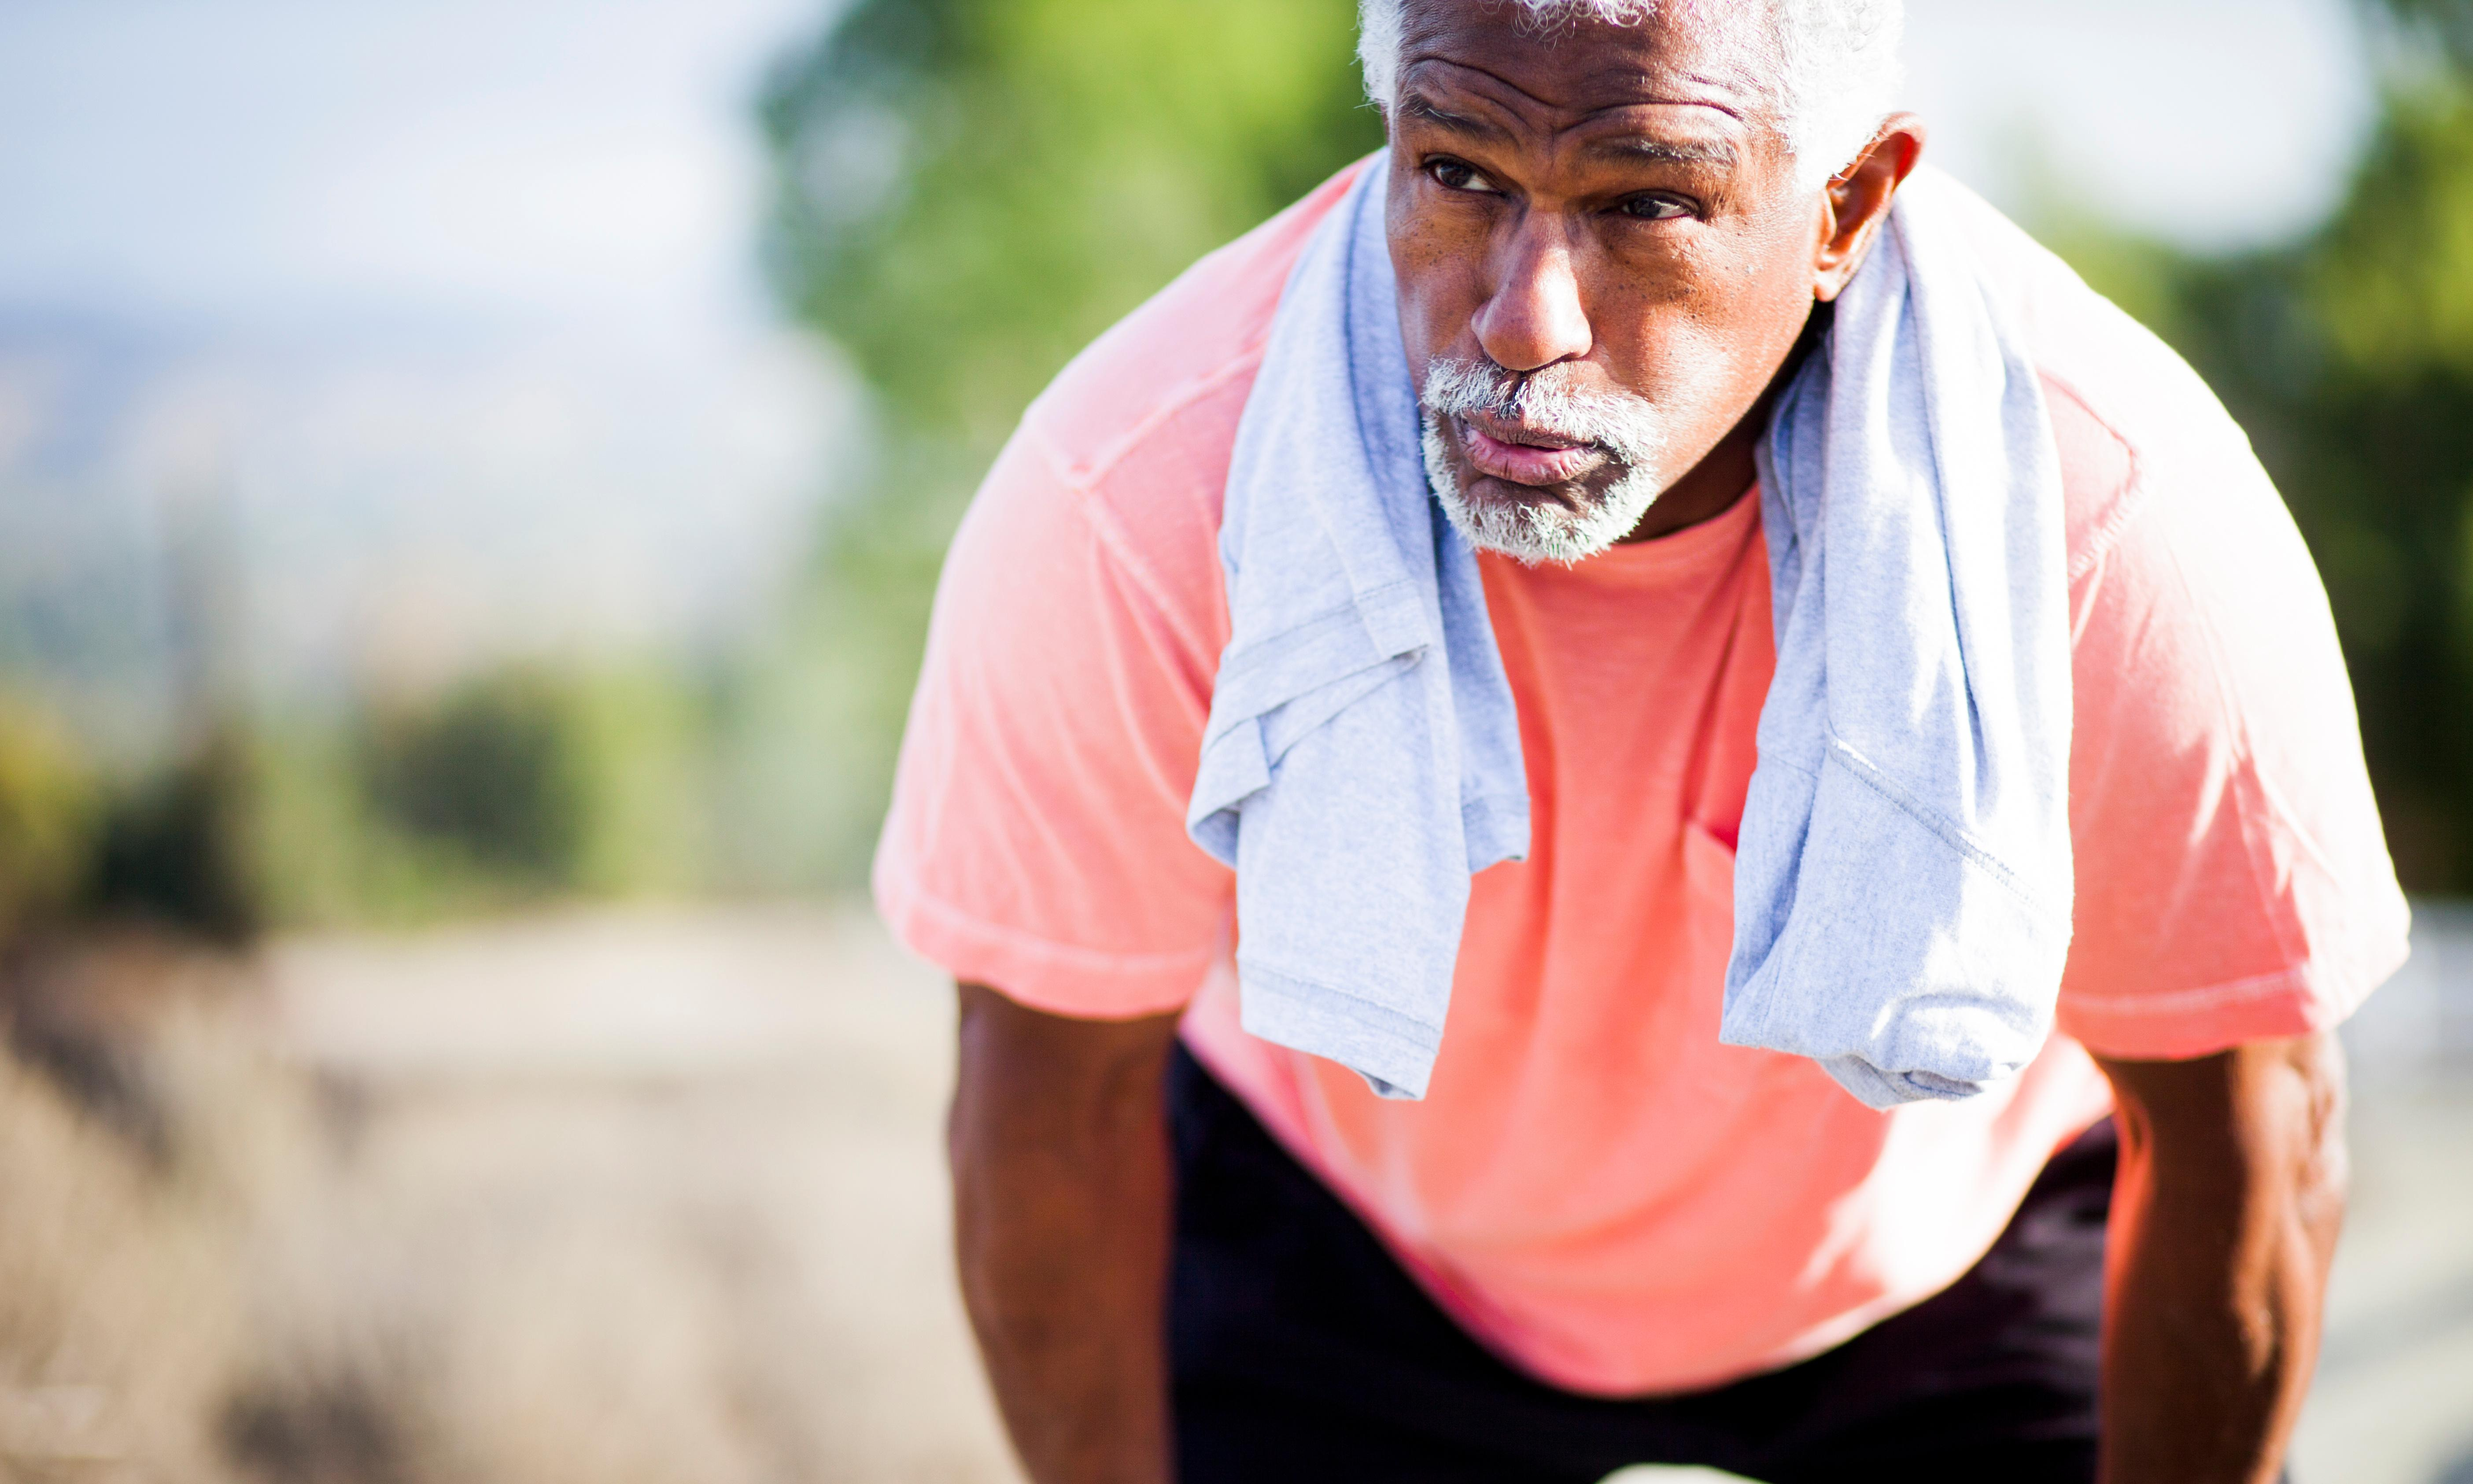 Seven ways to improve your breathing